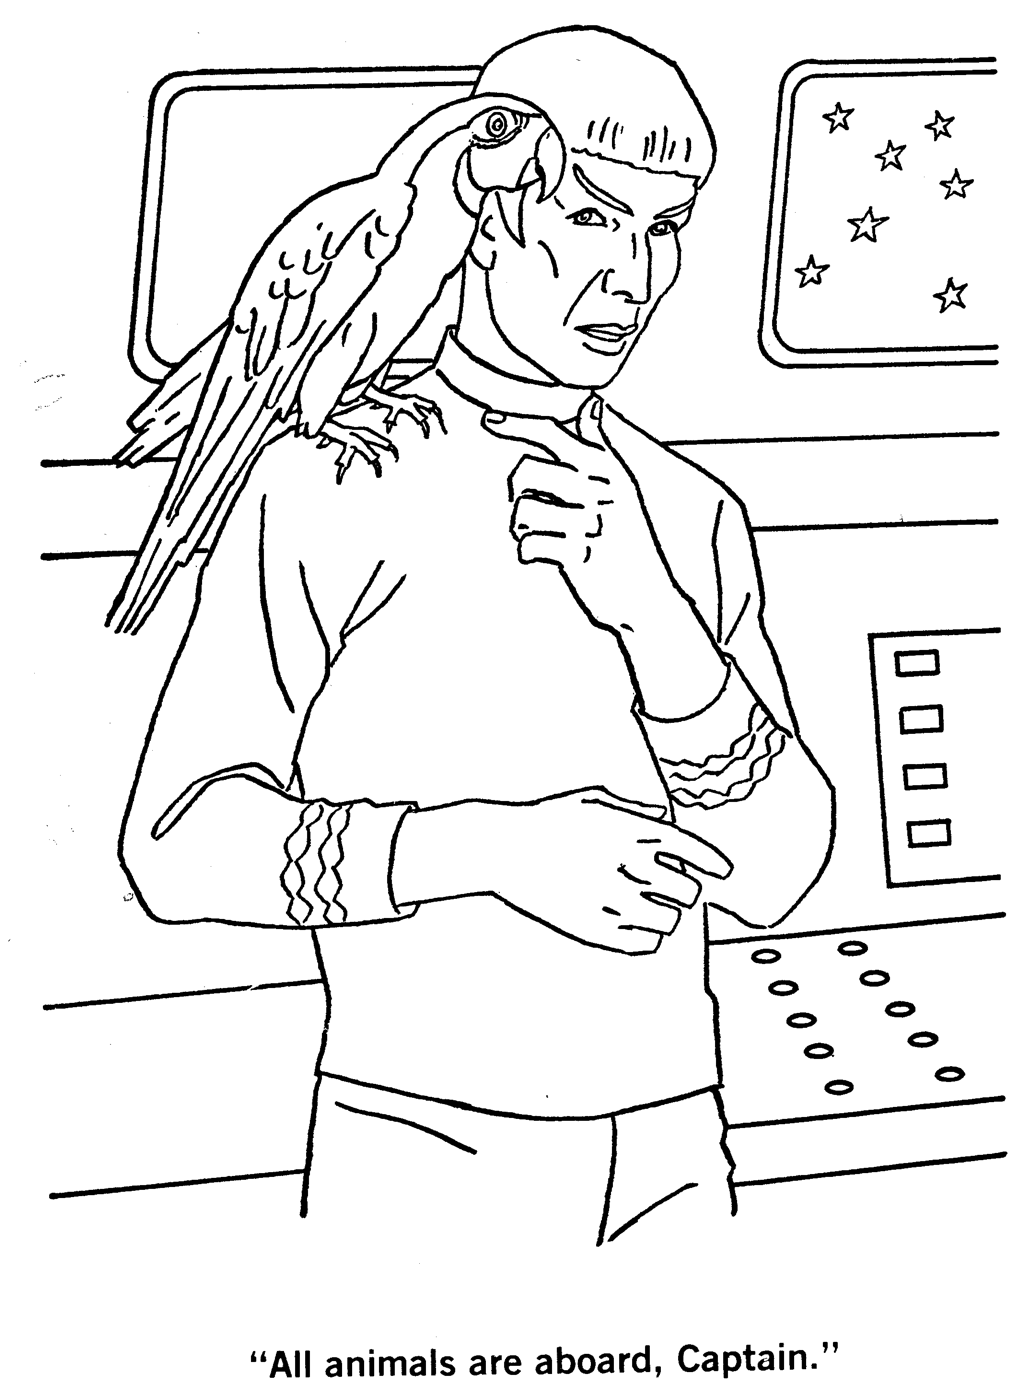 star trek coloring pages star trek the colorin - Star Trek Coloring Book